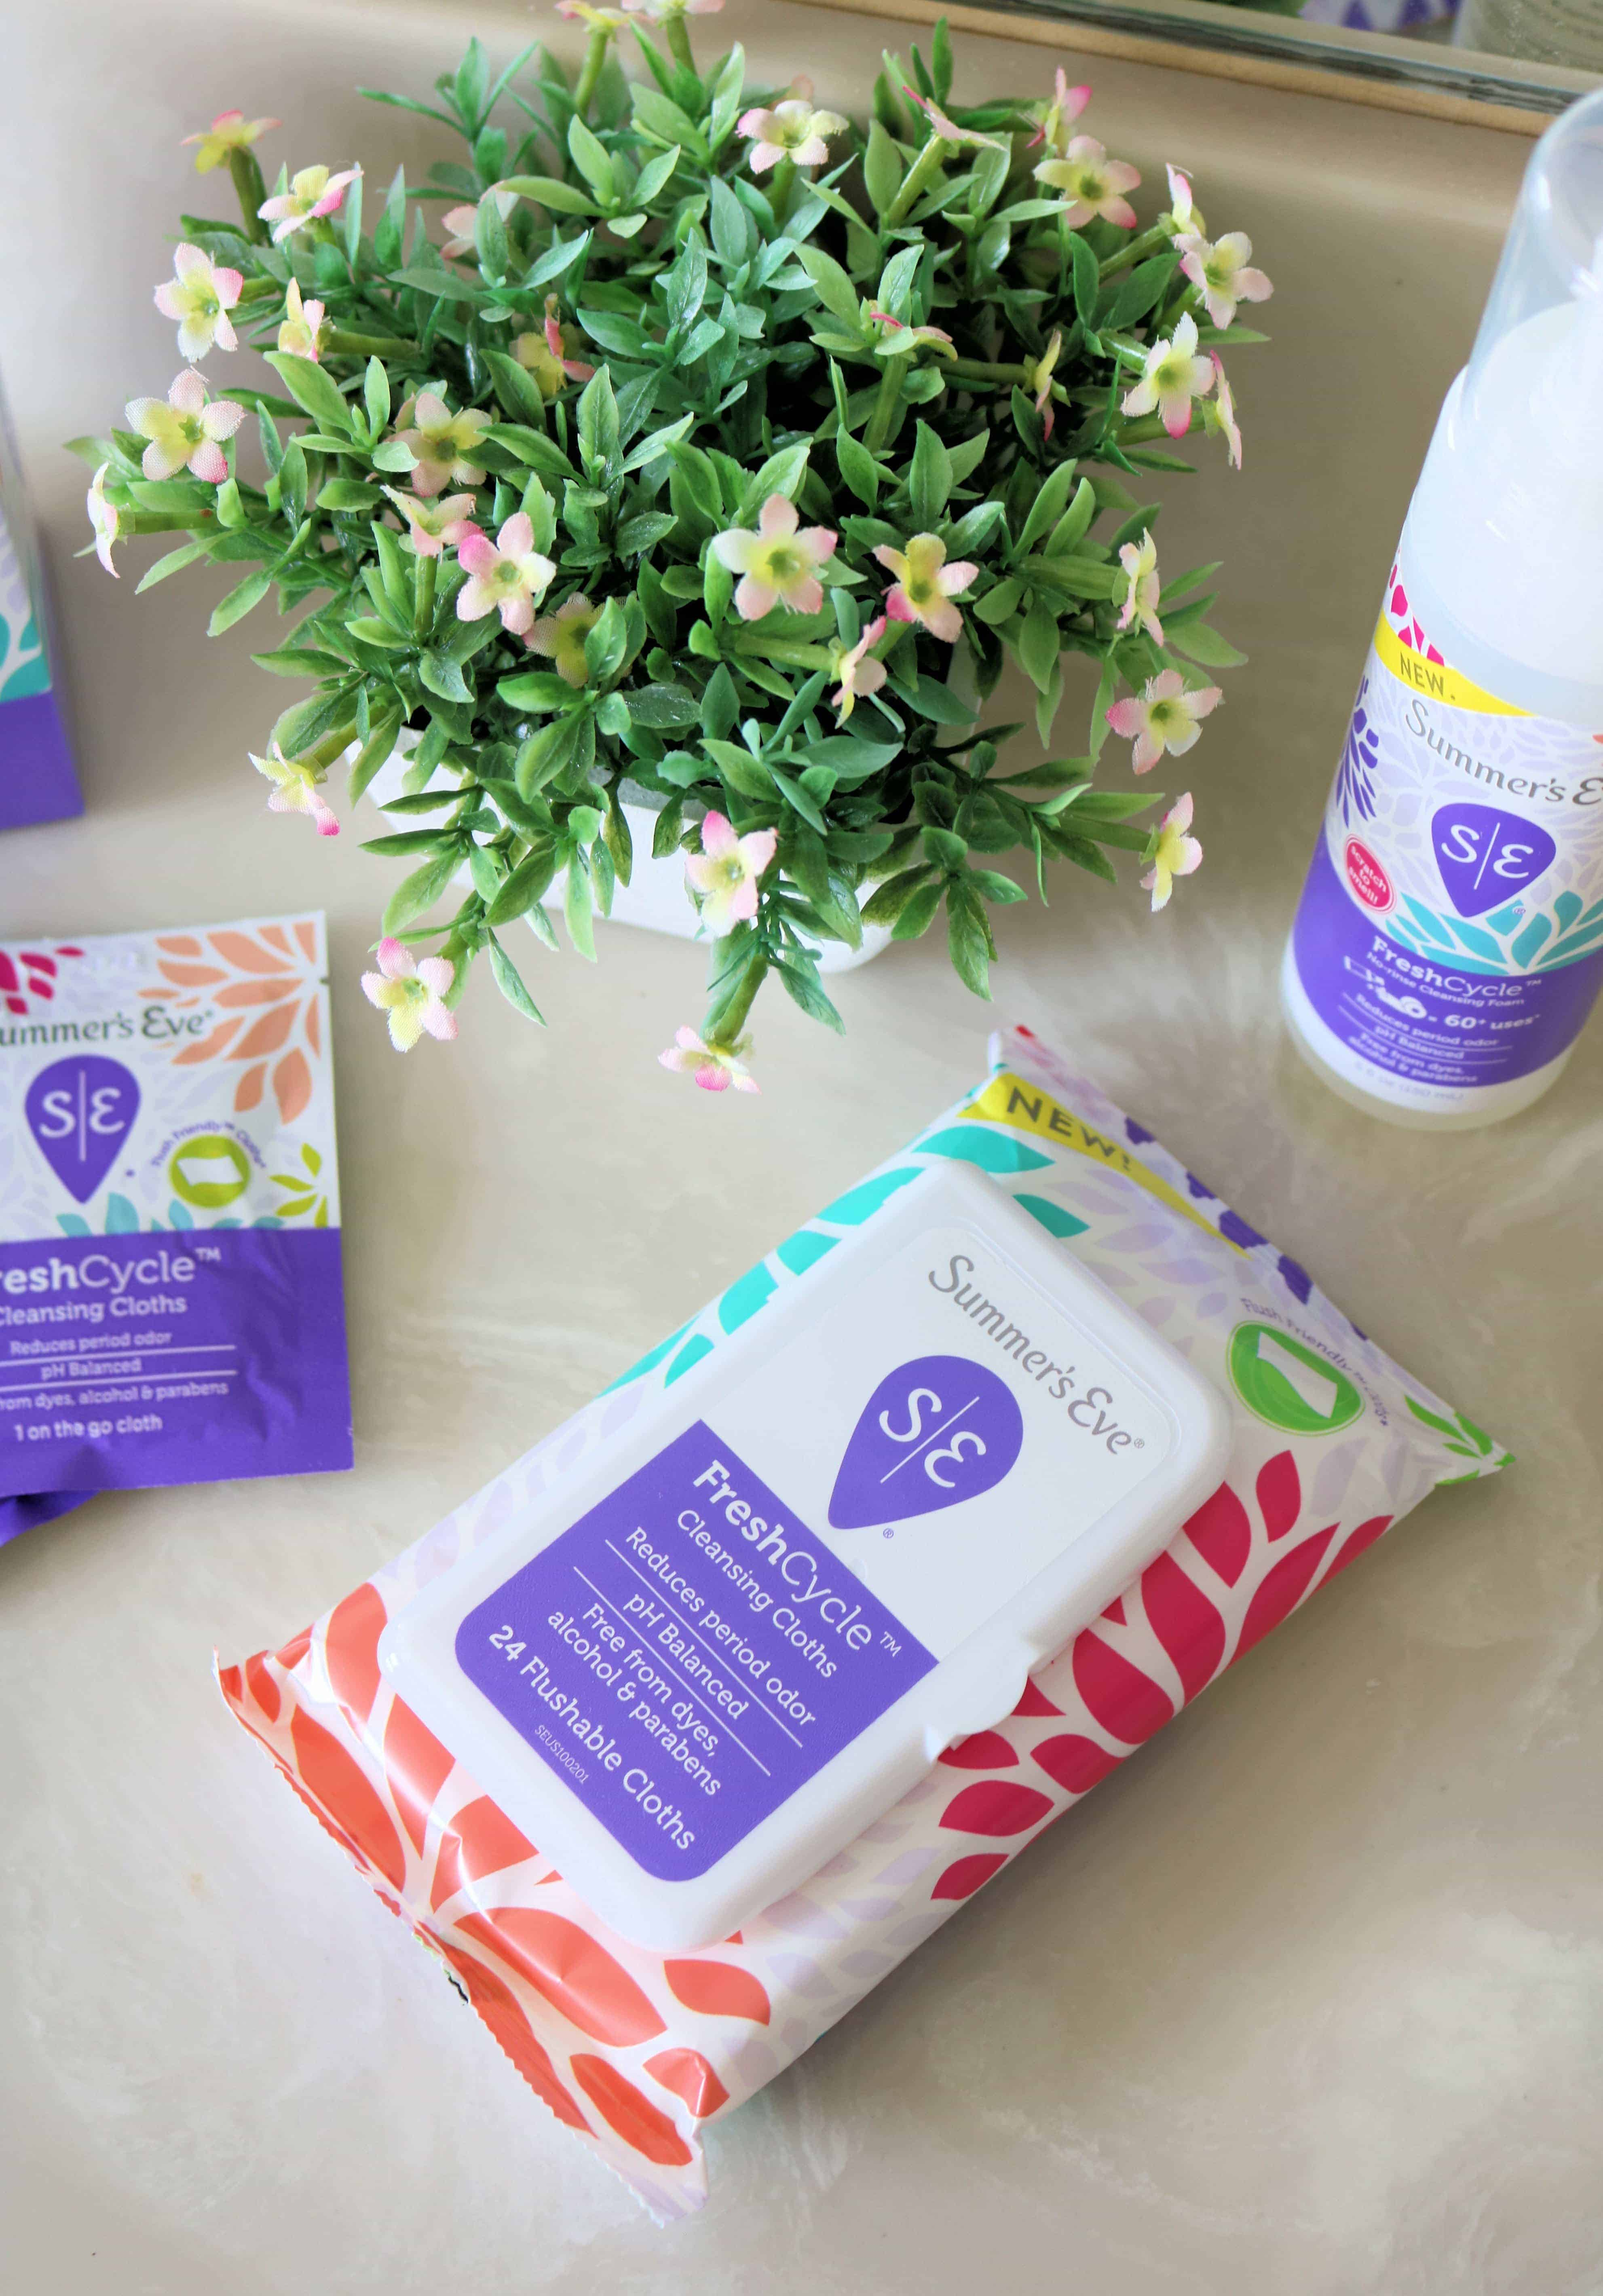 Want to feel more confident and fresh during your monthly cycle? Check out the new Summer's Eve FreshCycle collection with at-home and on-the-go feminine hygiene products for women. #ad #FreshCycle #SEFreshAF